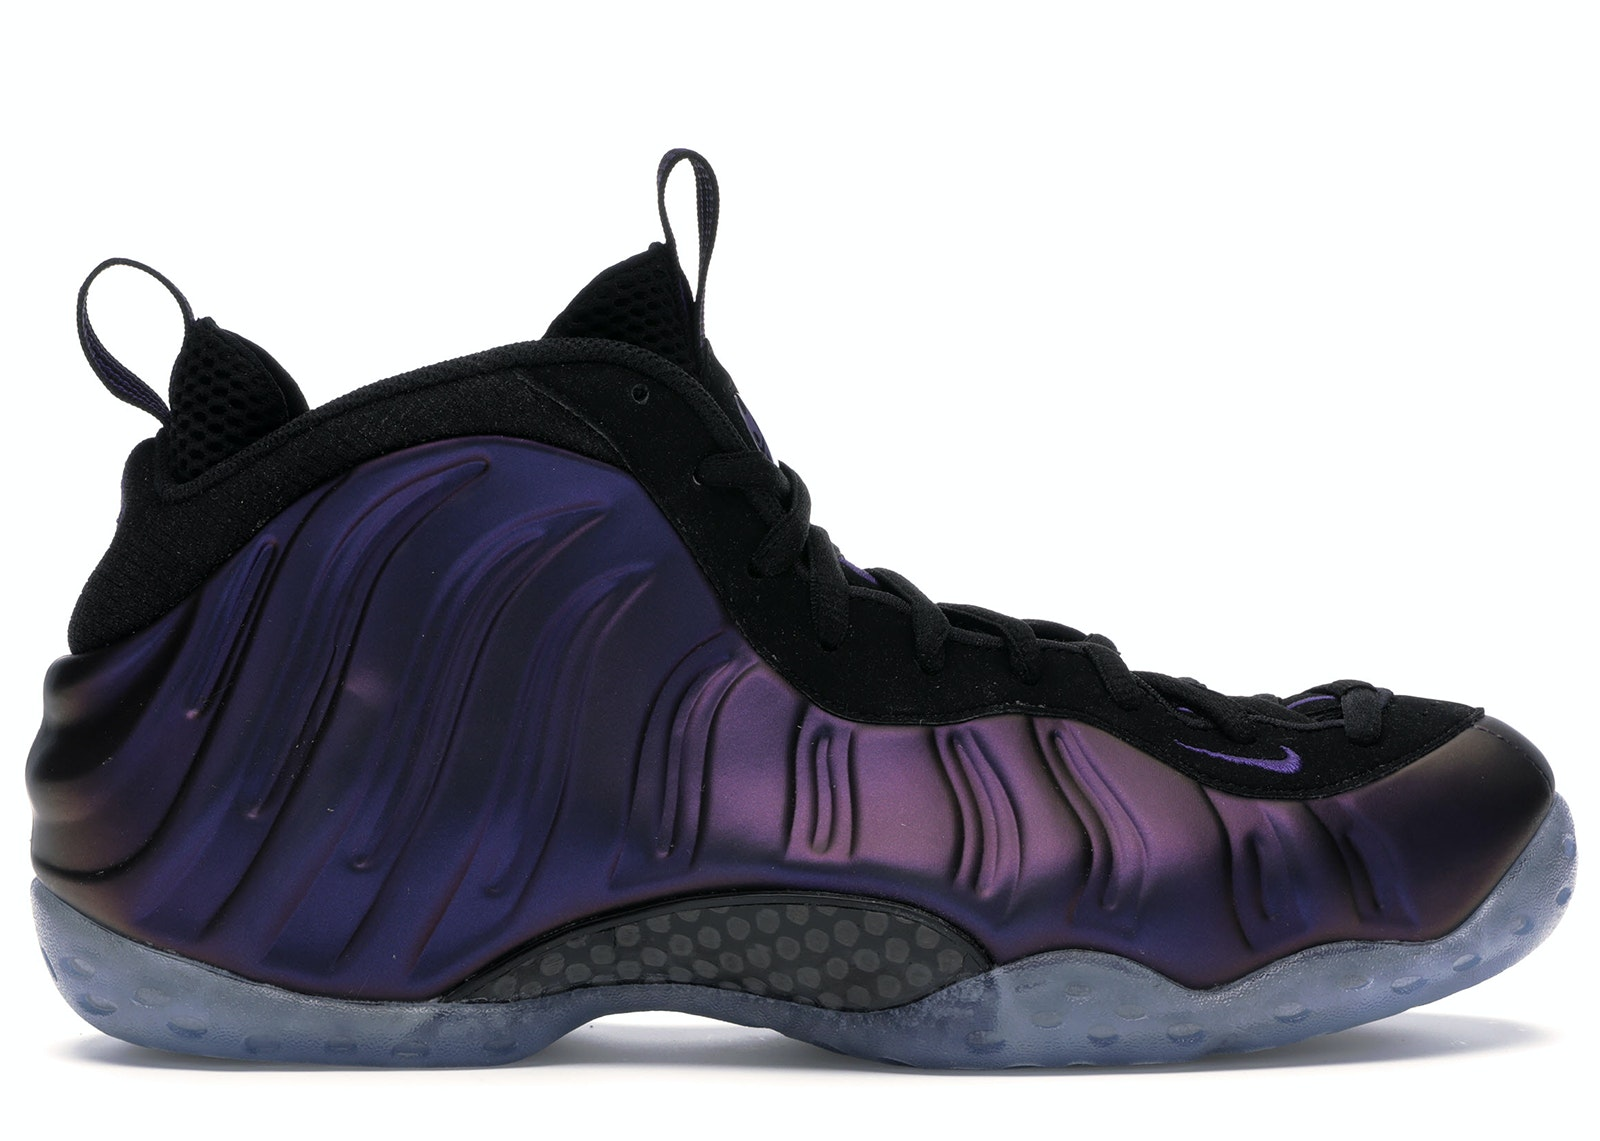 Air Foamposite One Eggplant (2017)